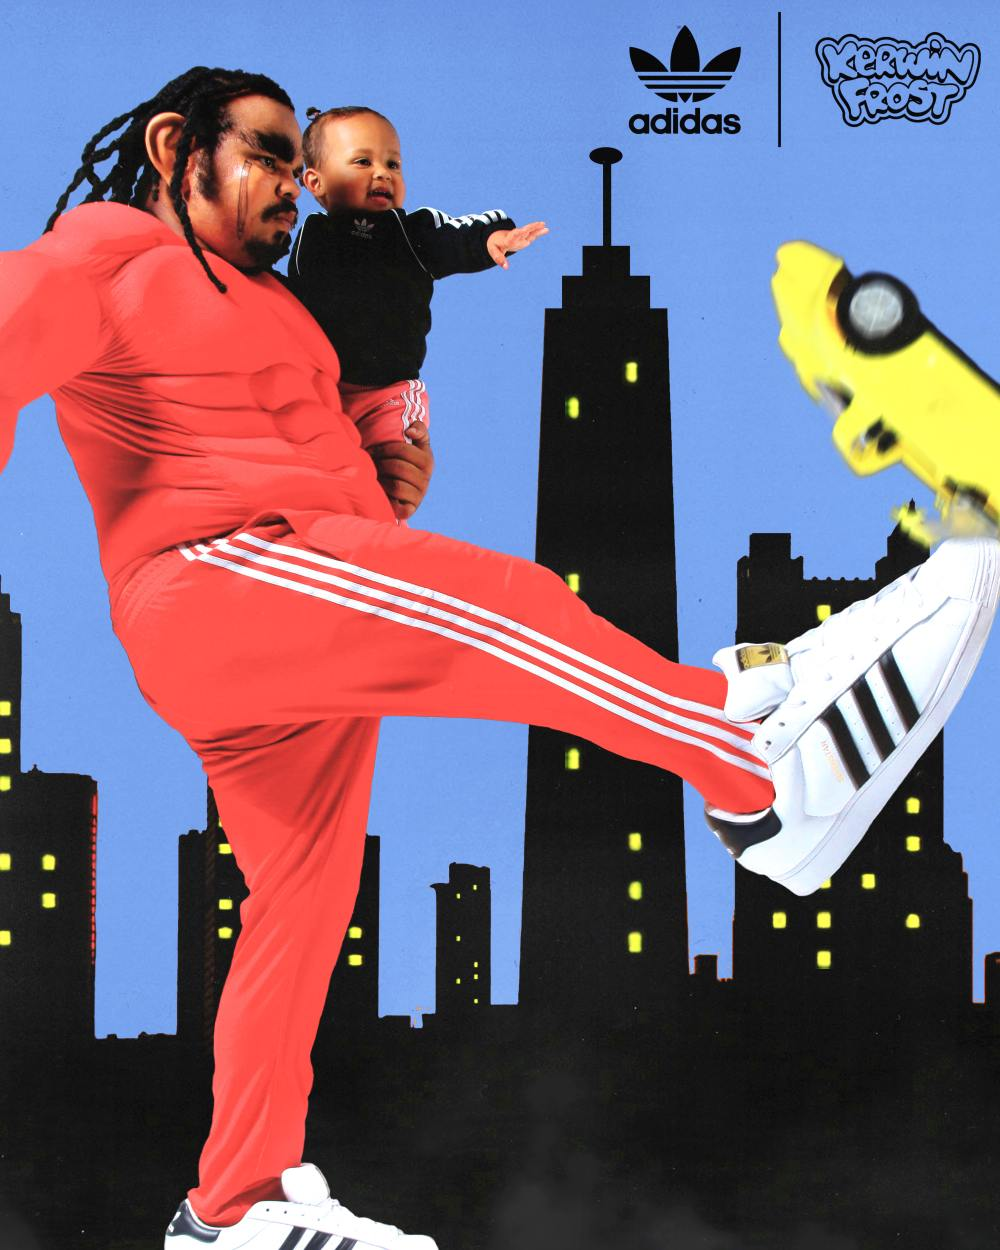 """kerwin frost hold the child wear shoes to kick the car - Kerwin Frost x Adidas 推出极有创意的 """"SUPERSTUFFED """"小丑鞋!"""